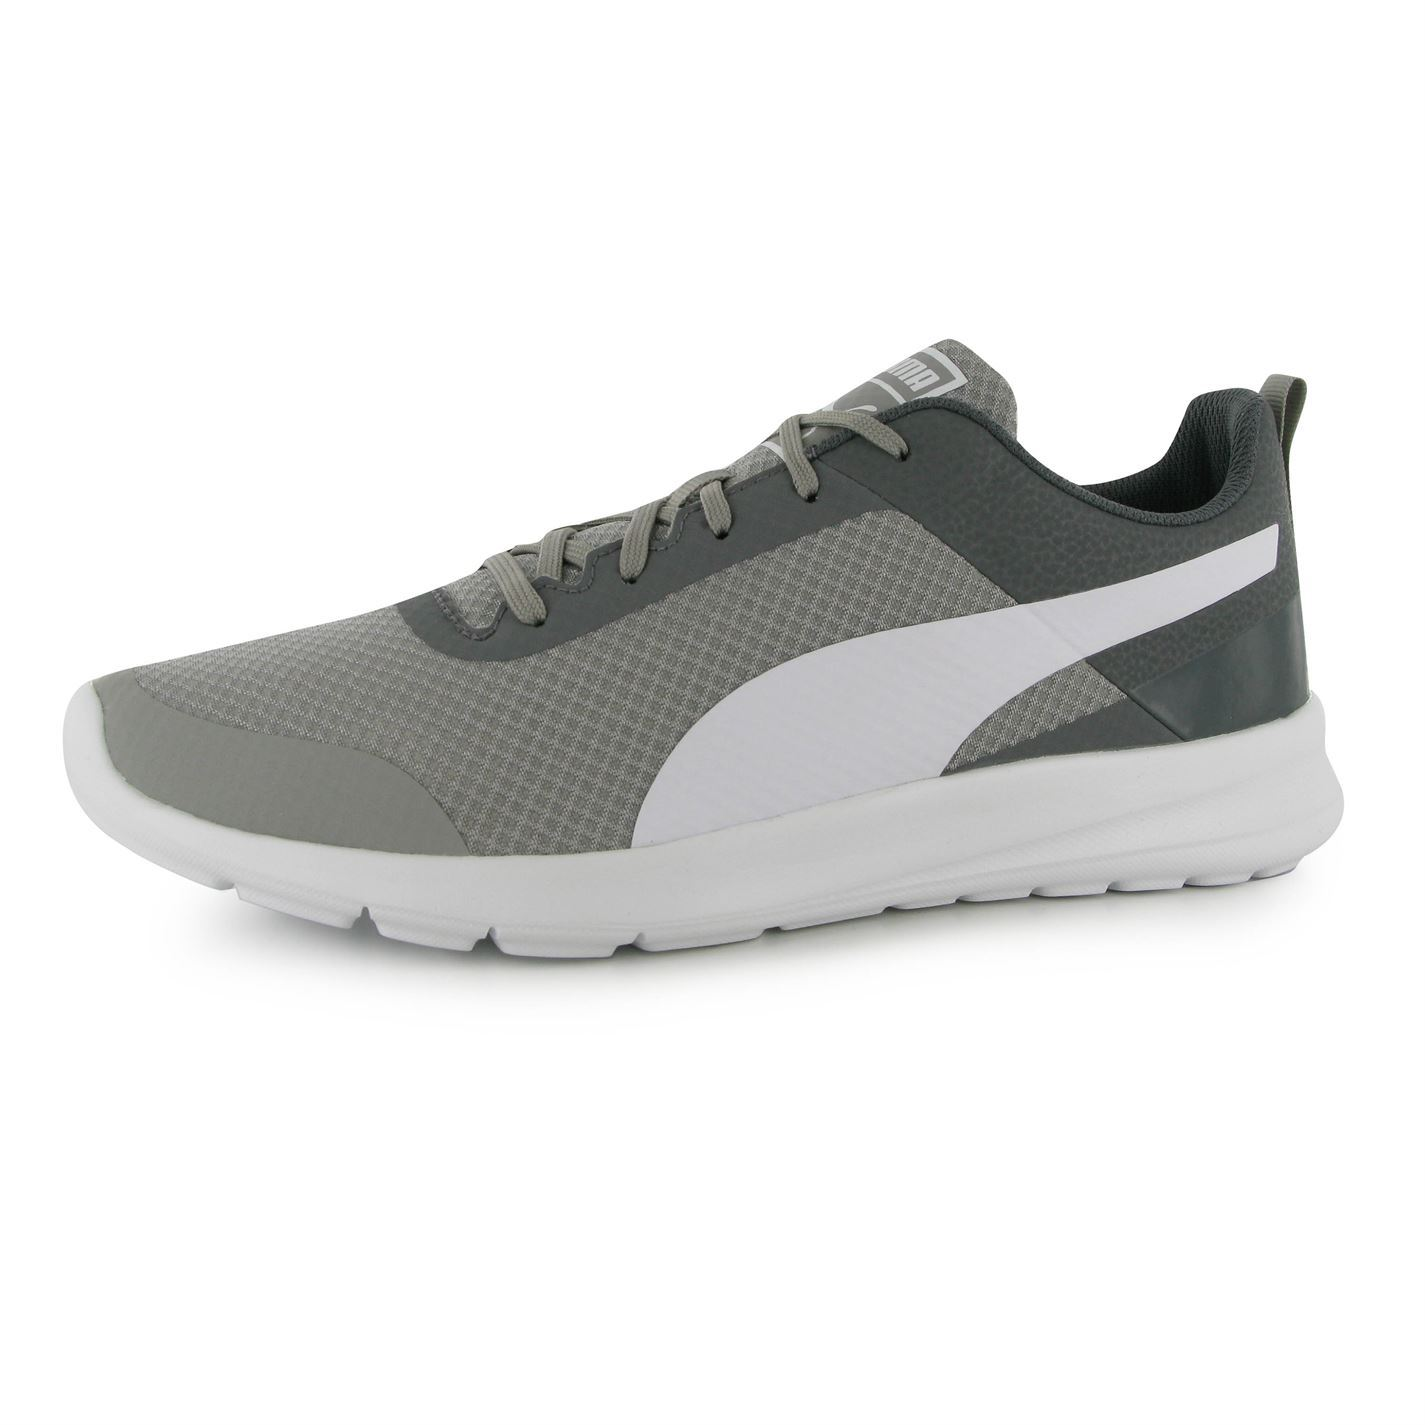 Puma Trax Runner Trainers Mens Drizzle Sports Shoes Sneakers Footwear